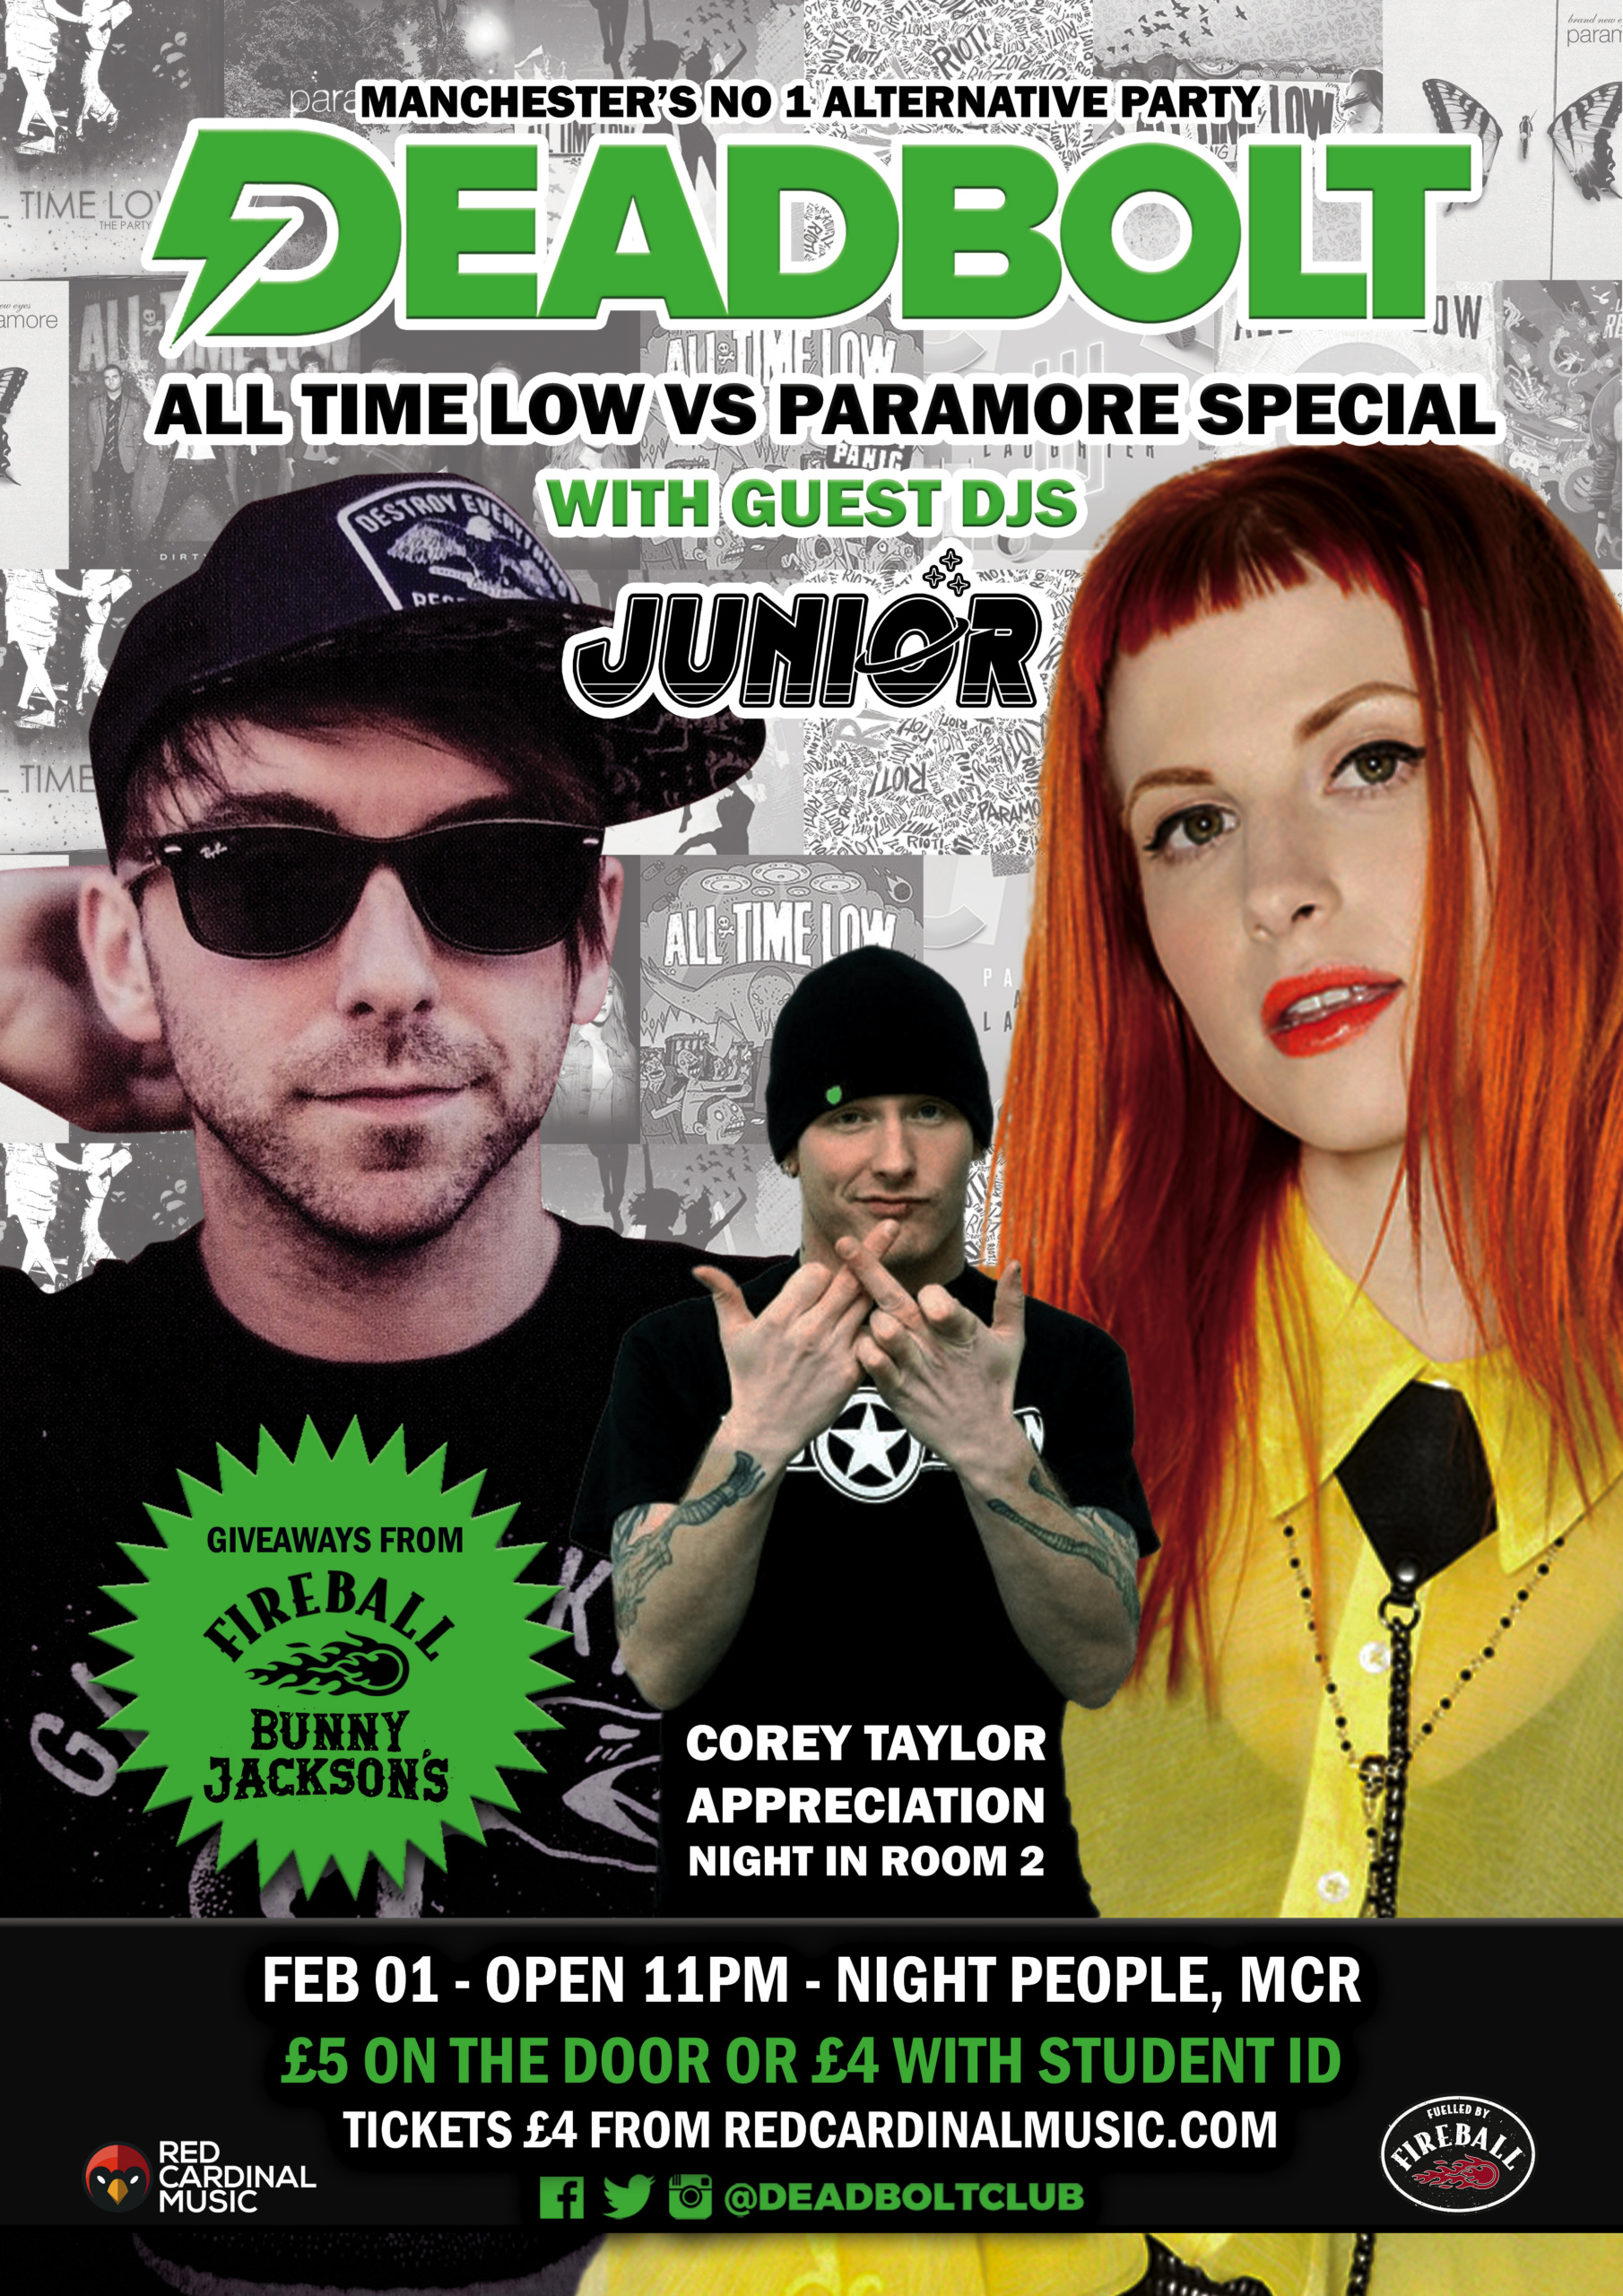 Deadbolt Manchester - All Time Low vs Paramore ft Junior - Feb 20 - Poster - Red Cardinal Music